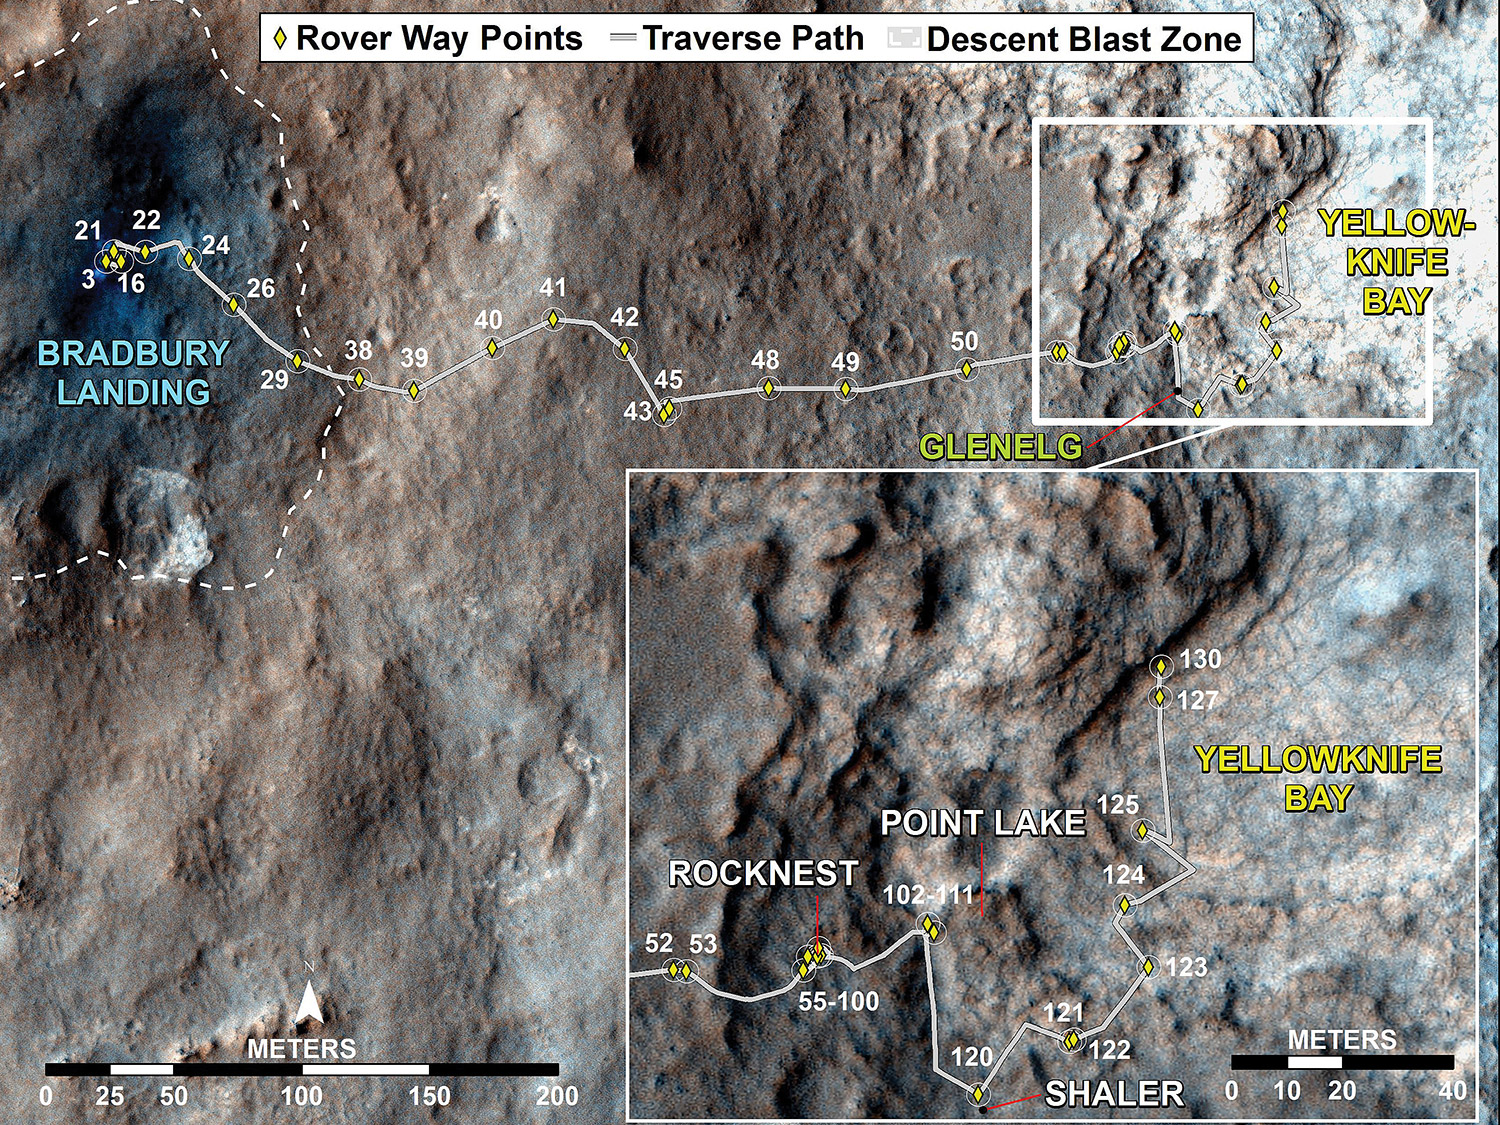 Sol 130 Curiosity Traverse Map. This map traces where Curiosity drove between landing at Bradbury Landing, and the position reached during Sol 130 (Dec. 17, 2012) at Yellowknife Bay which is inside an area called Glenelg. The inset shows the most recent legs of the traverse in greater detail. Credit: NASA/JPL-Caltech/ Univ. of Arizona